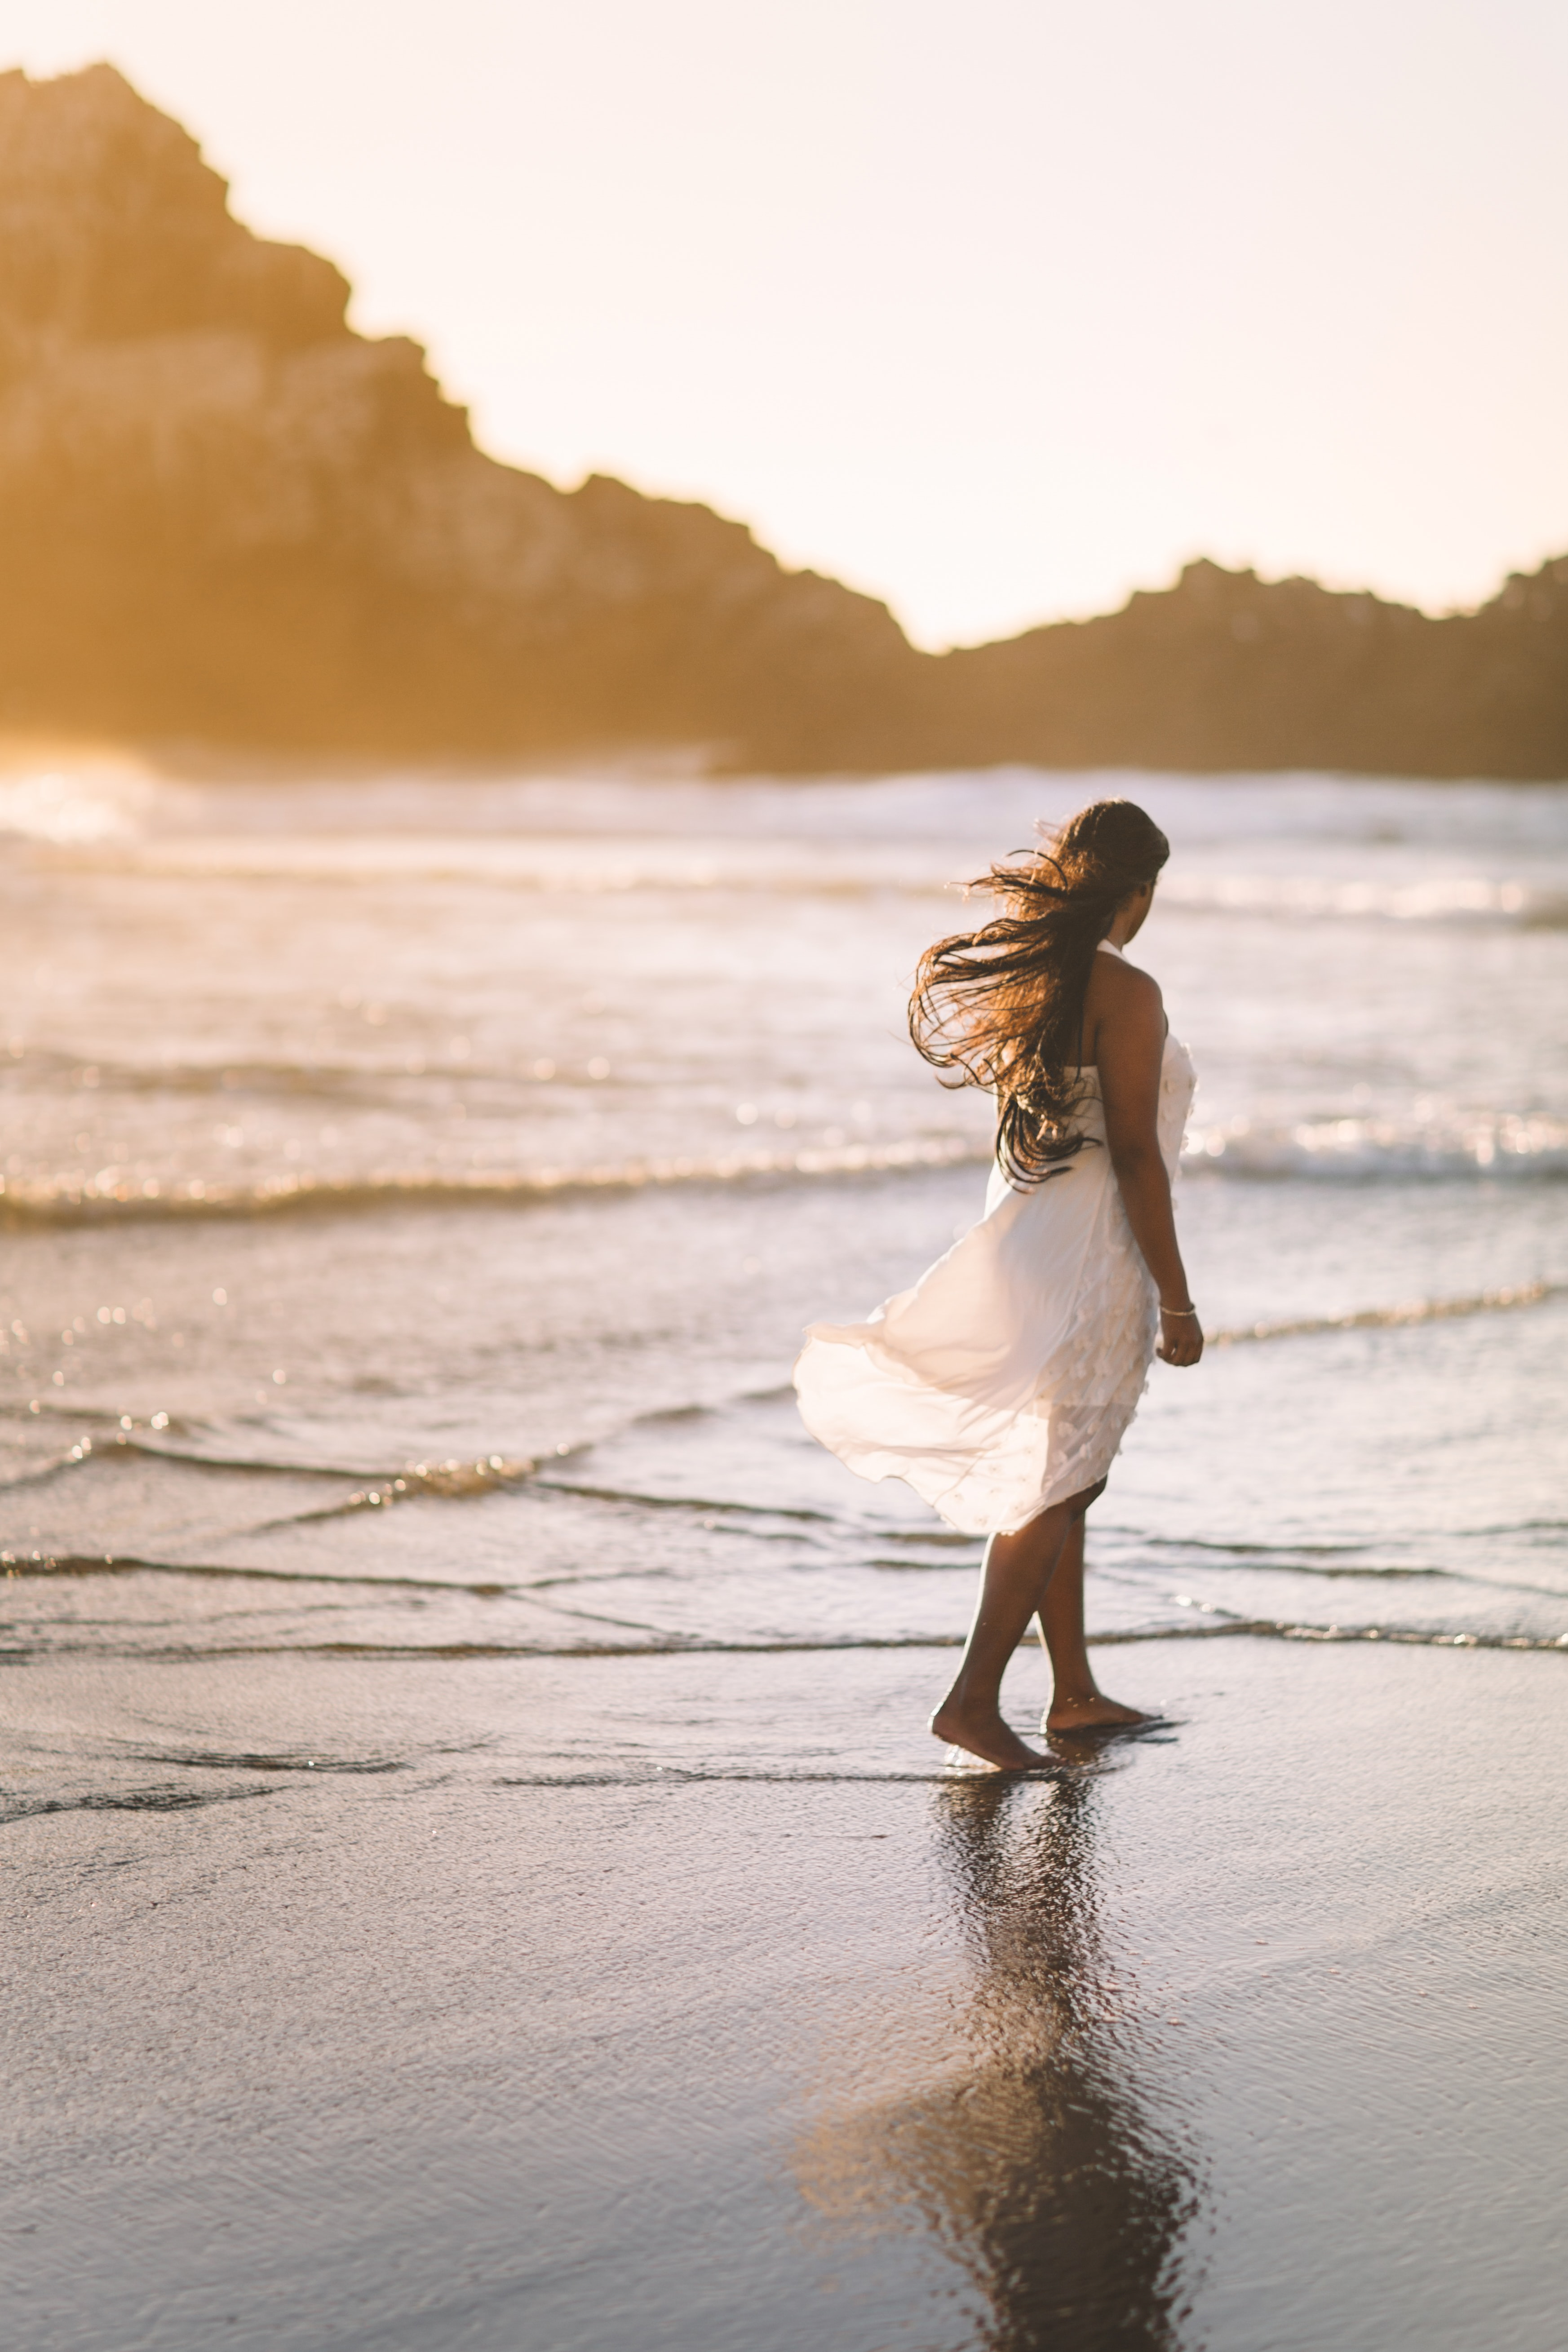 selective focus photo of woman standing on sea shore near rock formation during golden hour